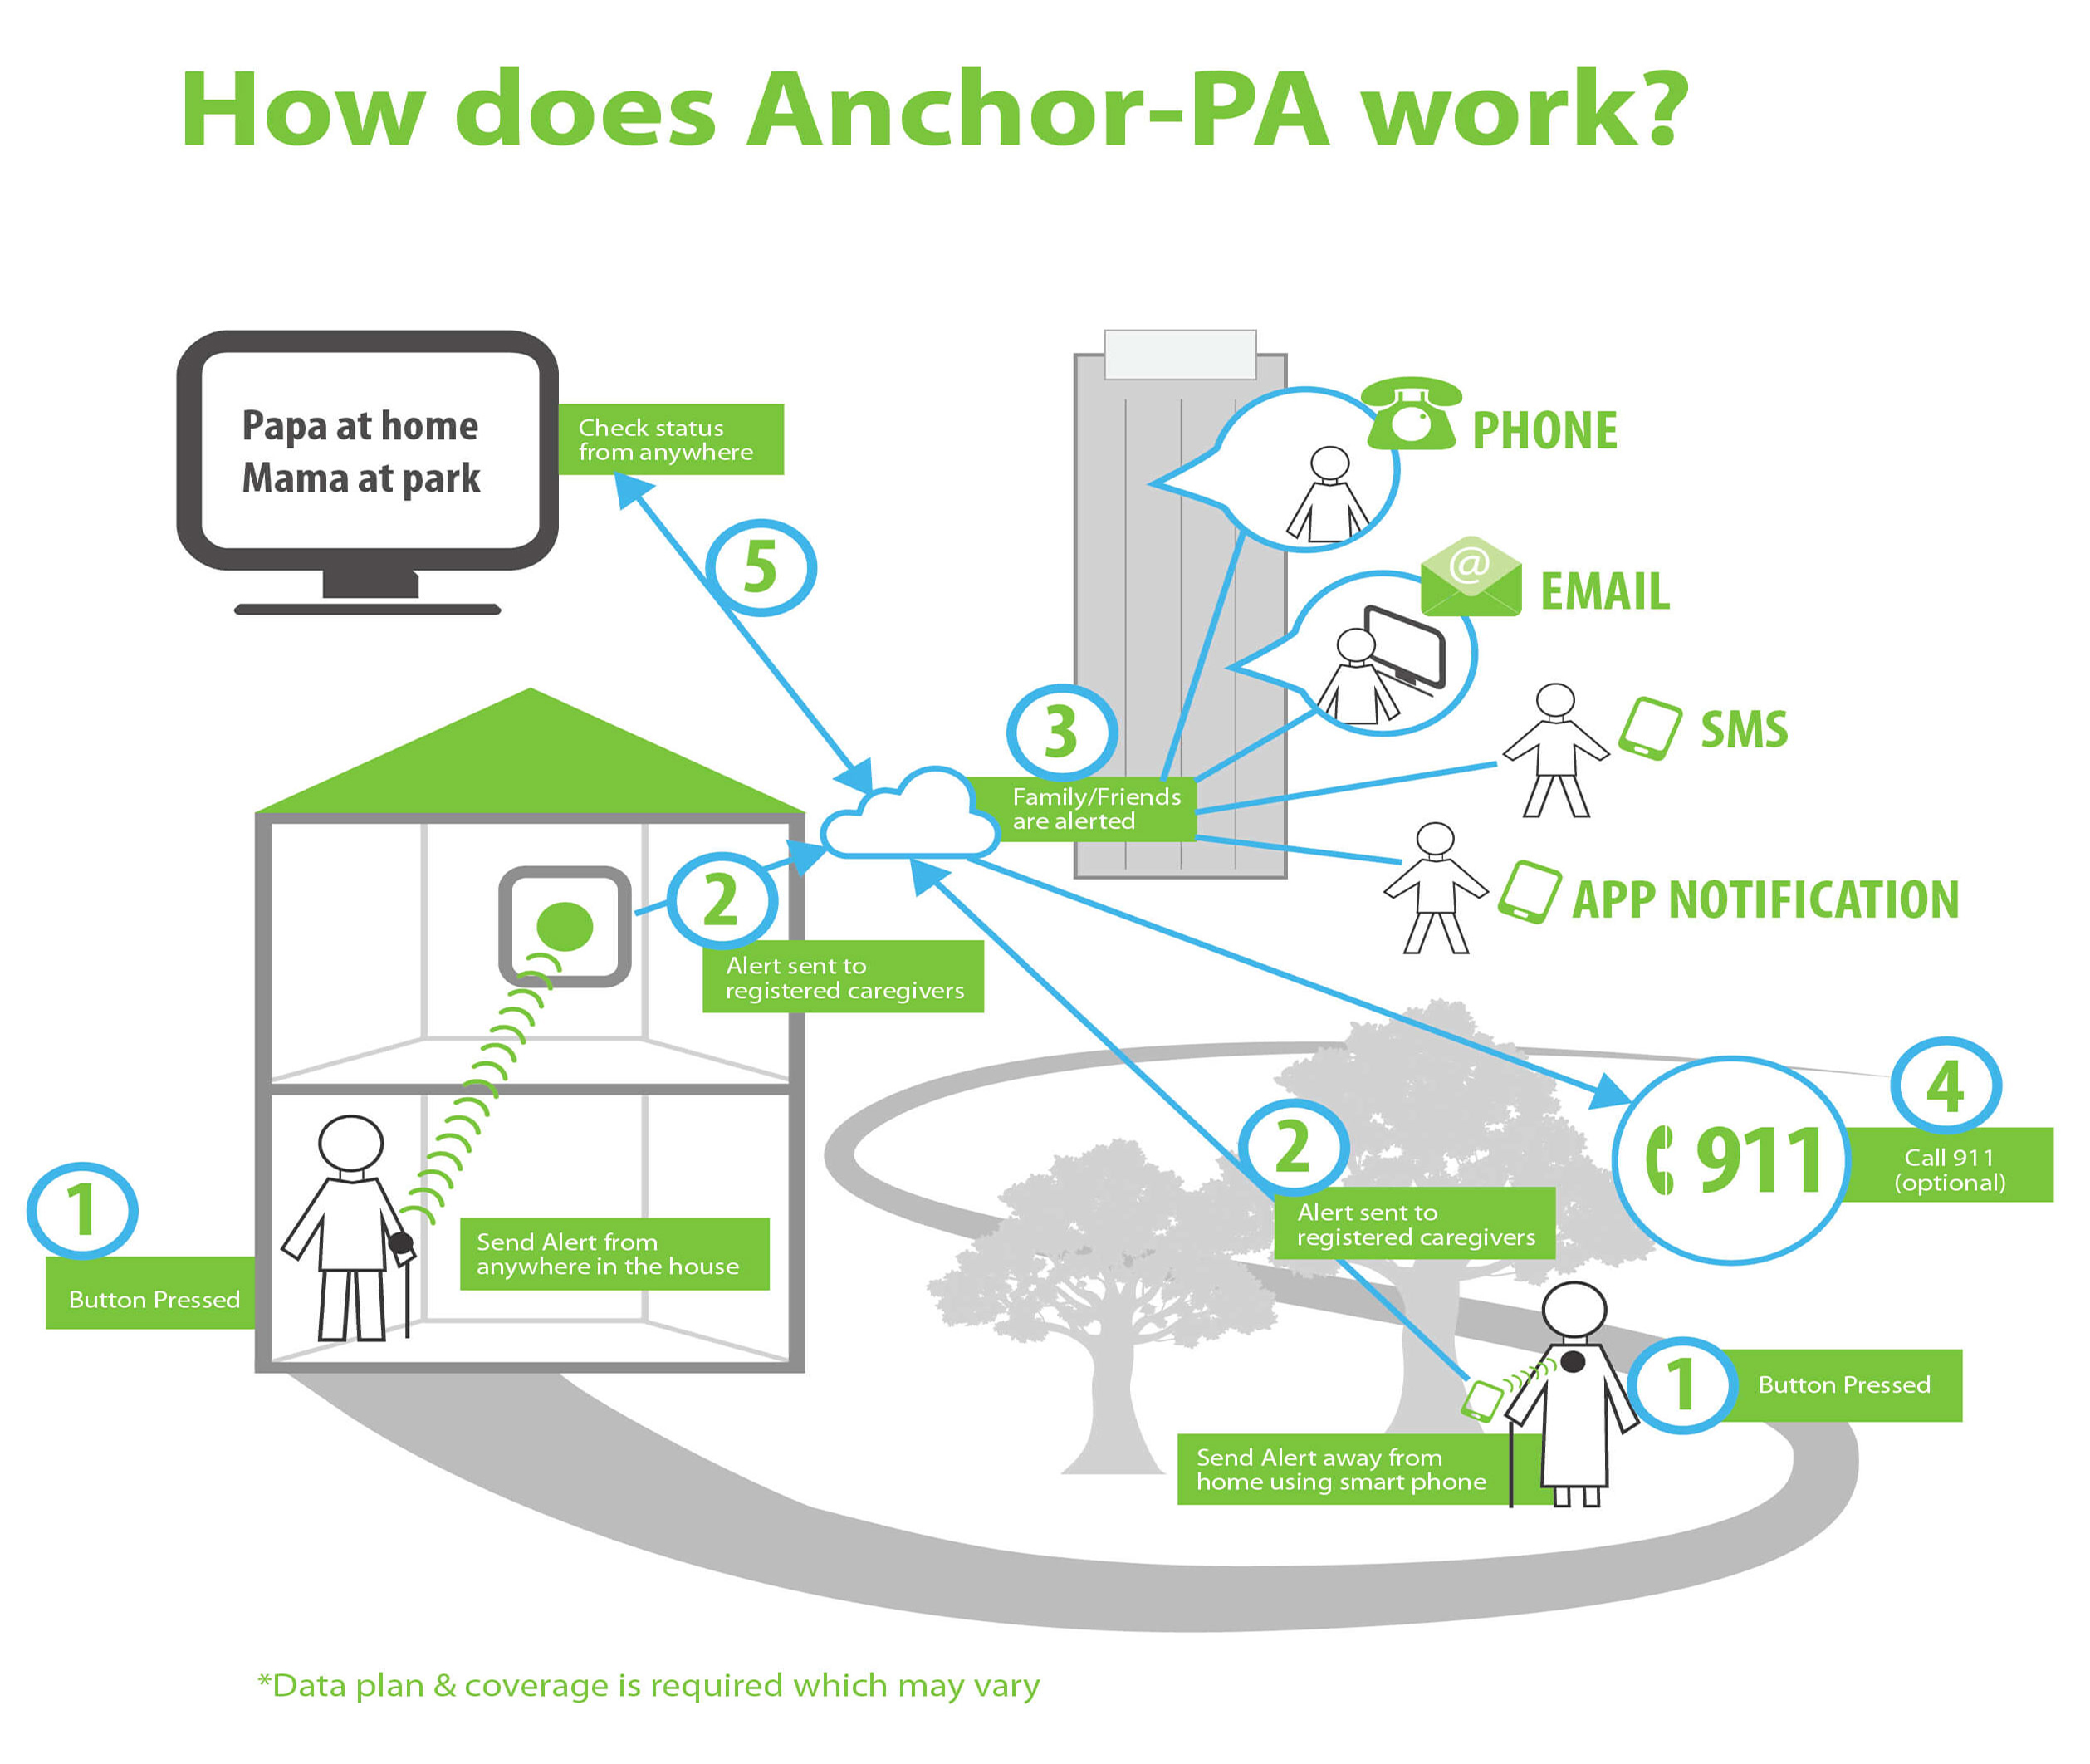 How does Anchor-PA work